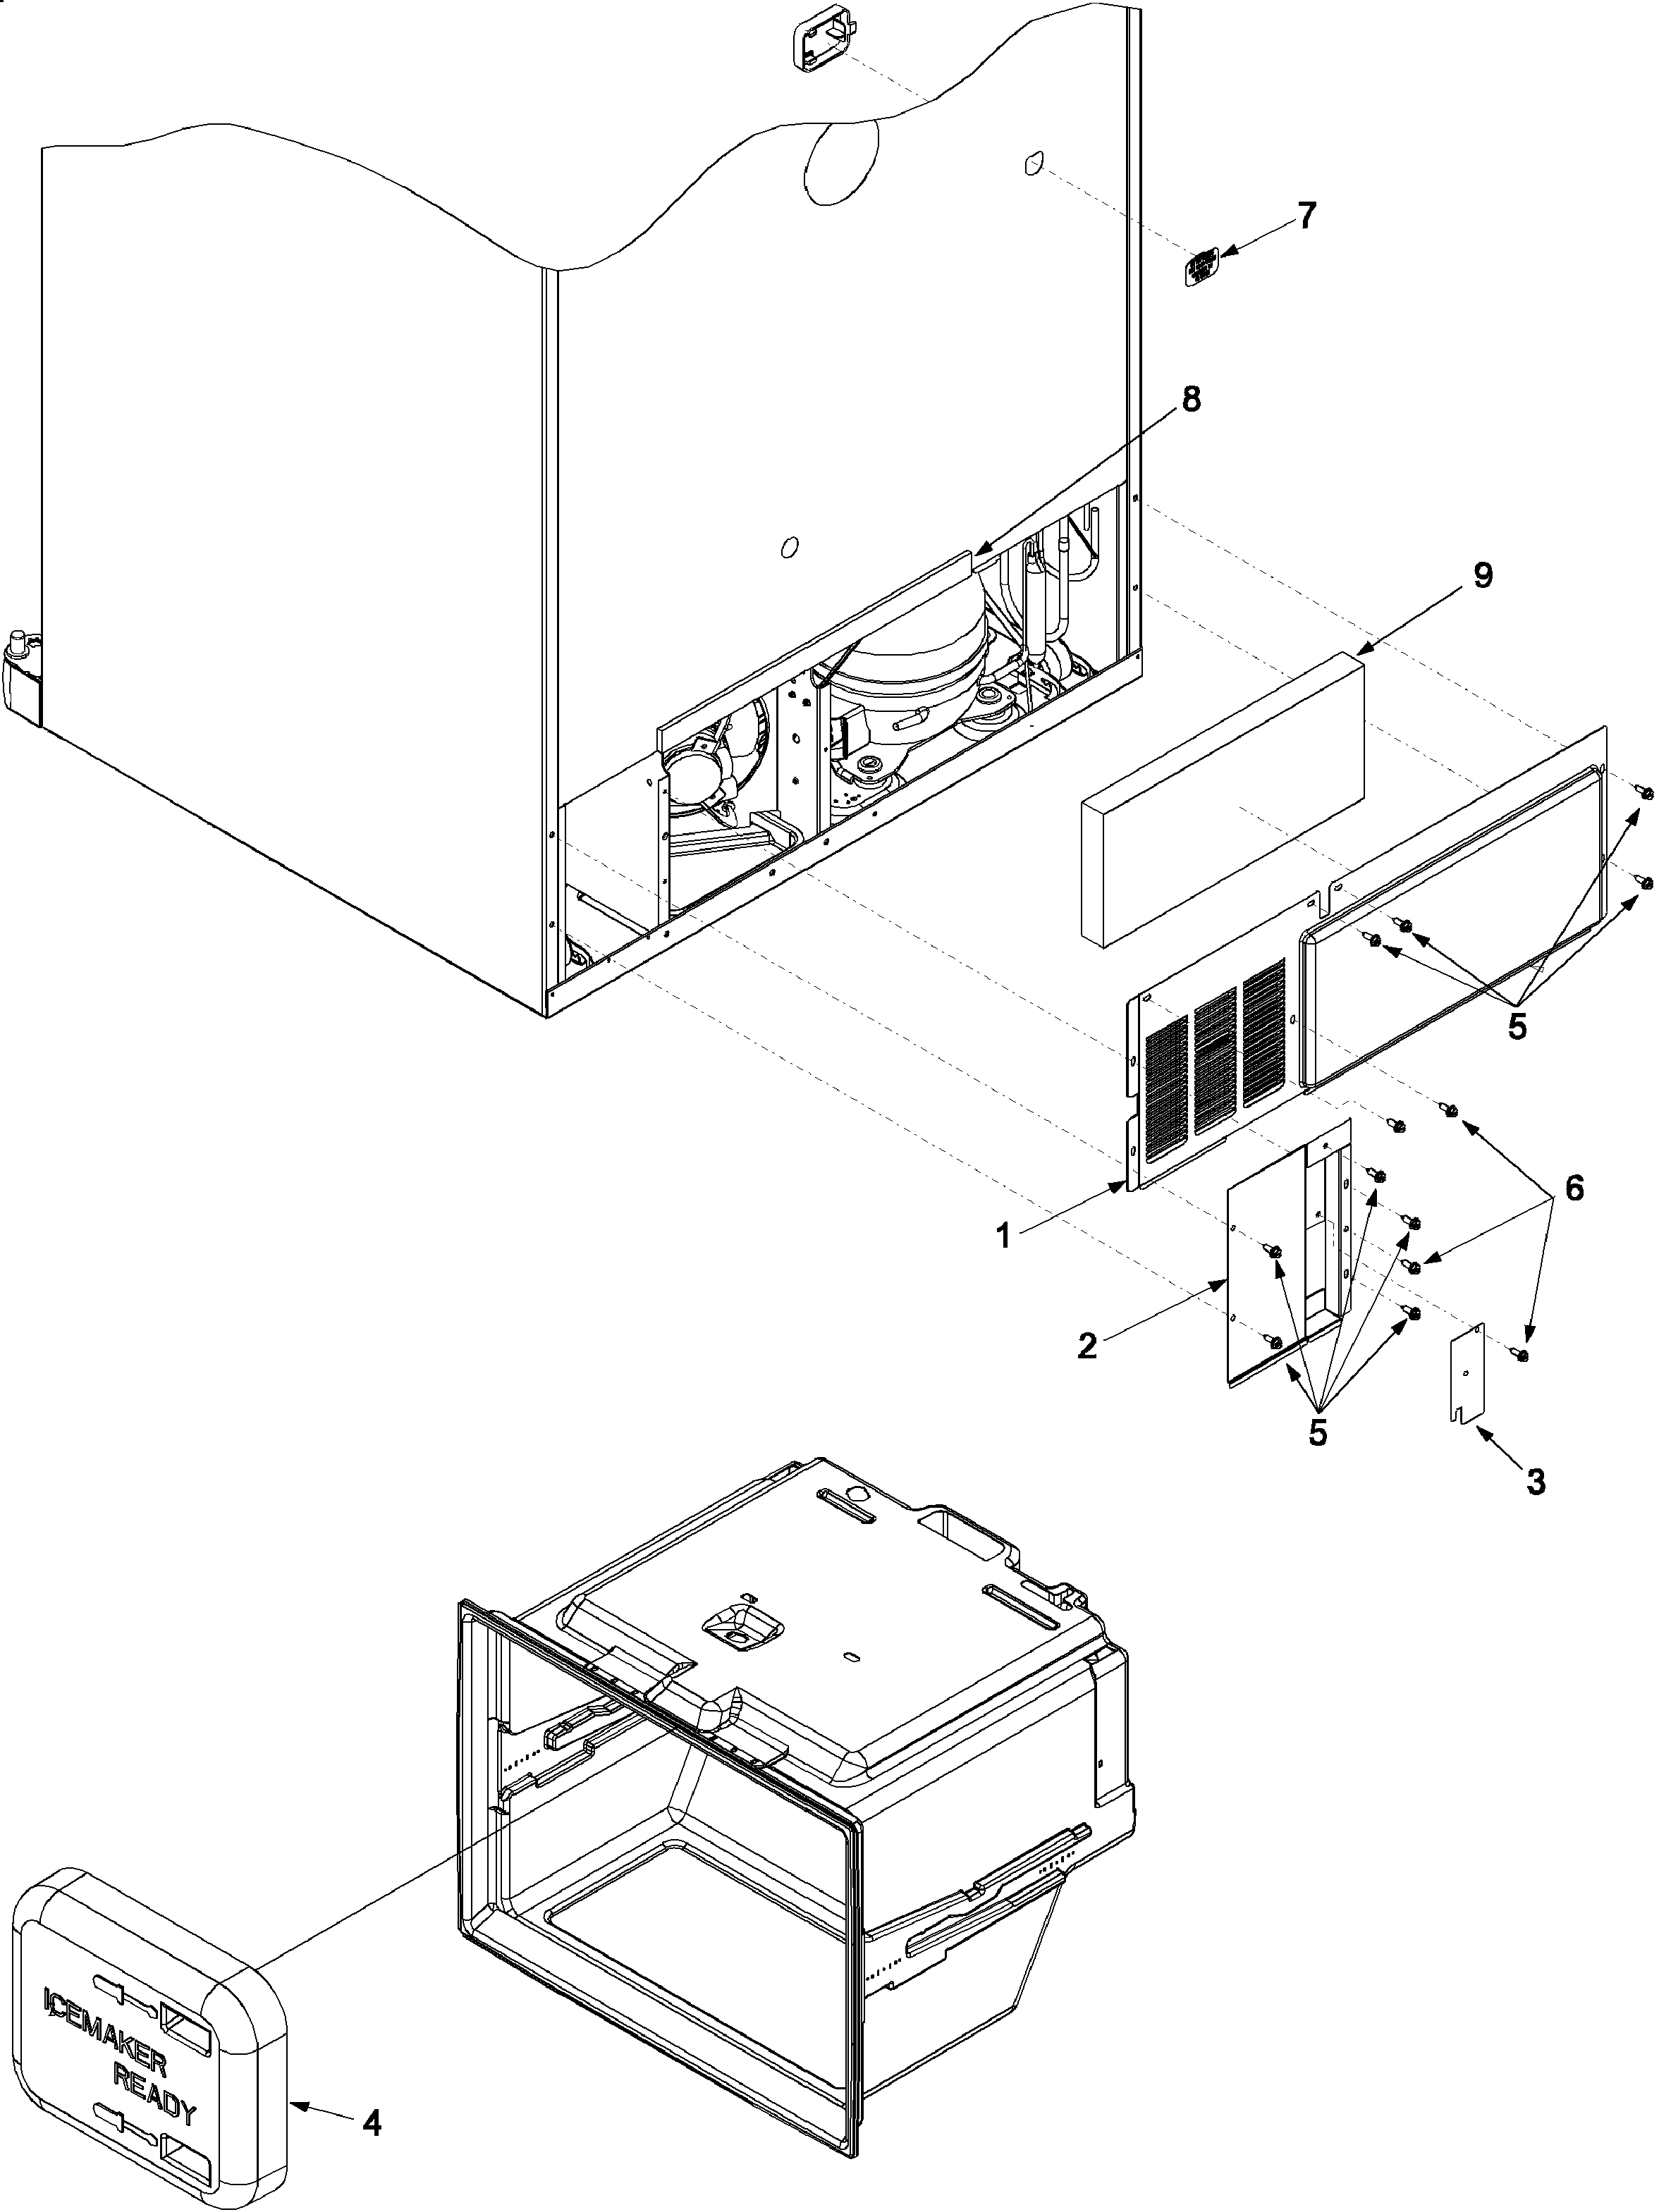 Amana XRBR206BW0 cabinet back diagram